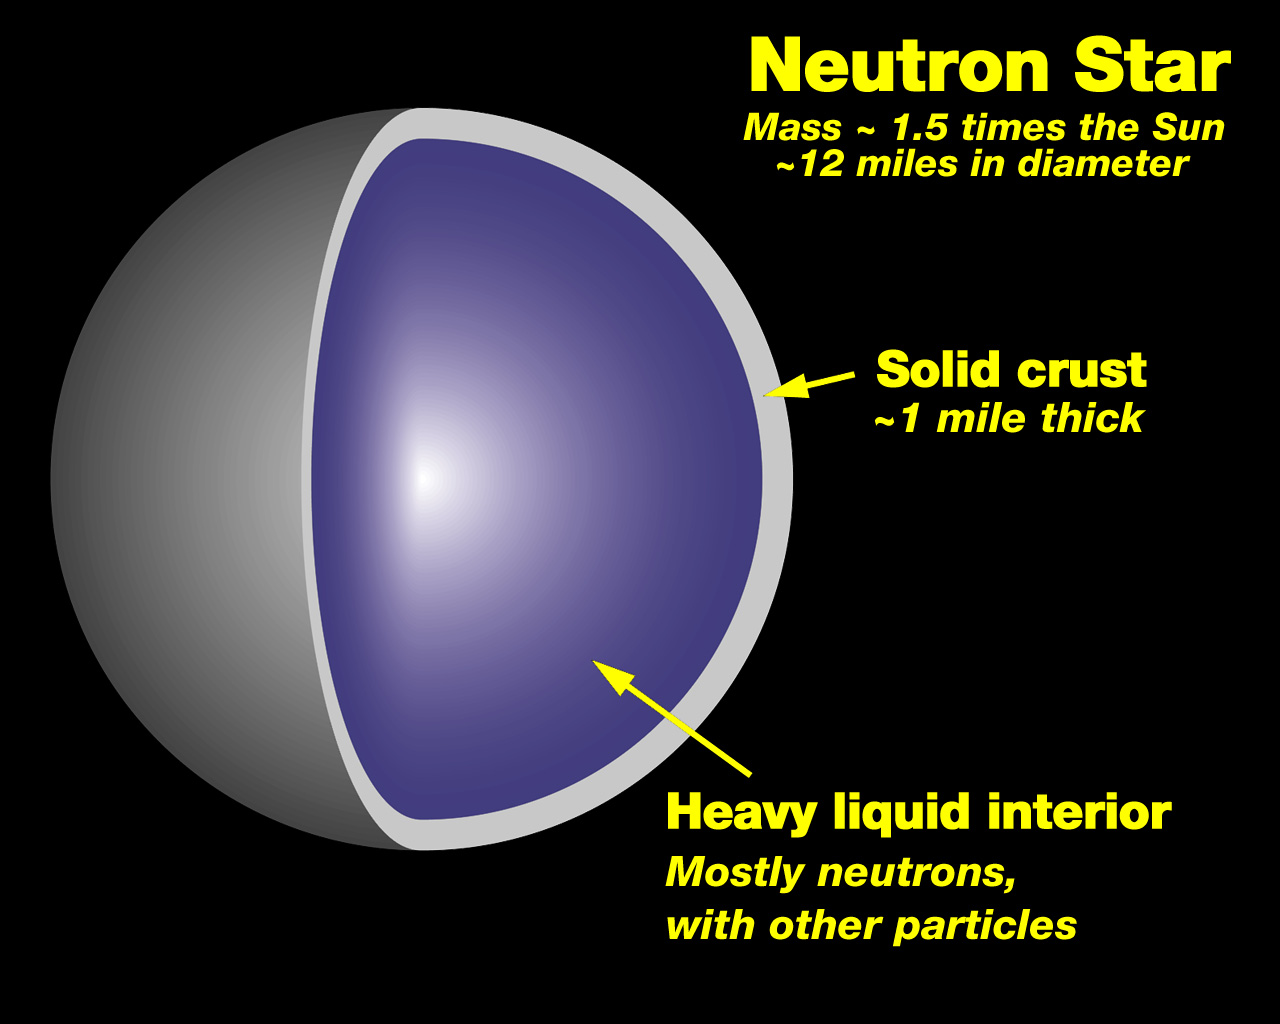 http://upload.wikimedia.org/wikipedia/commons/e/ed/Neutron_star_cross_section.jpg